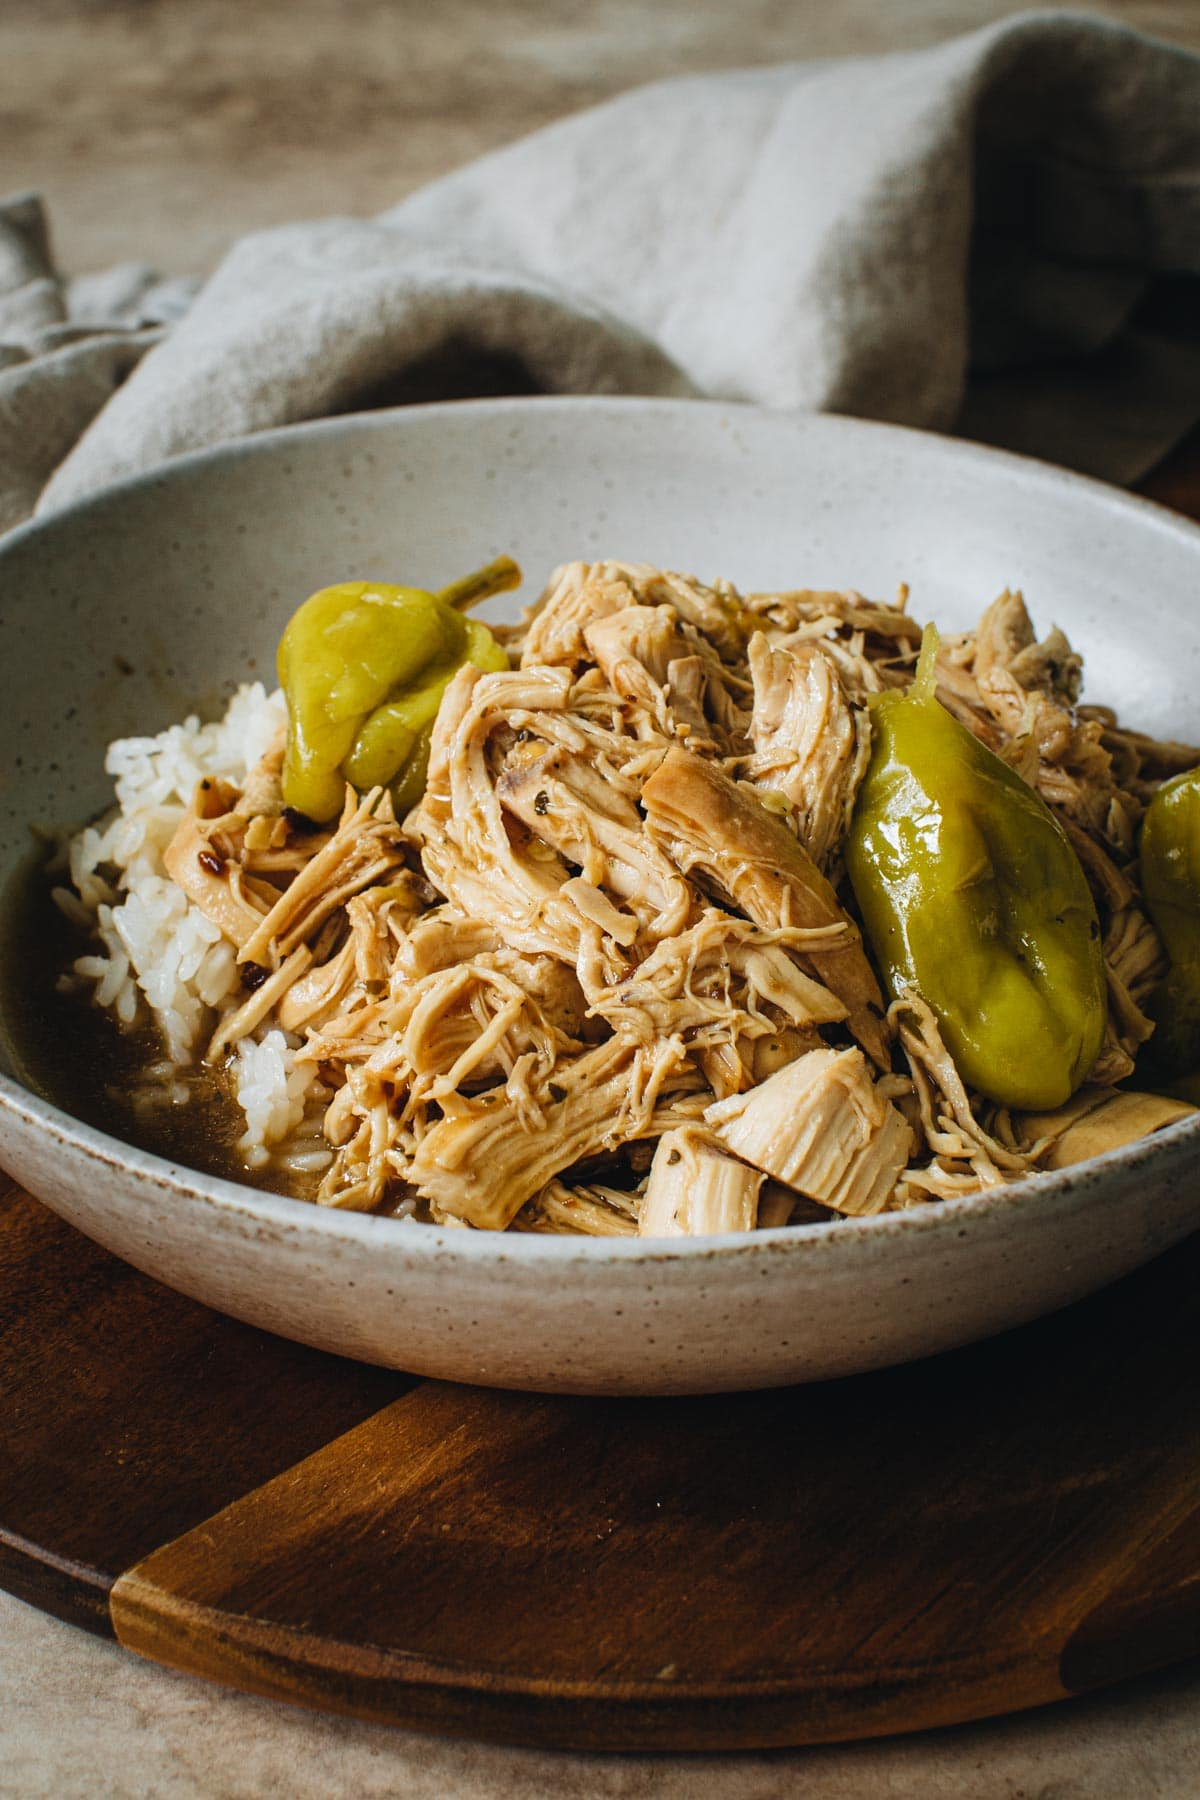 Mississippi chicken topped with pepperoncini peppers in a bowl.